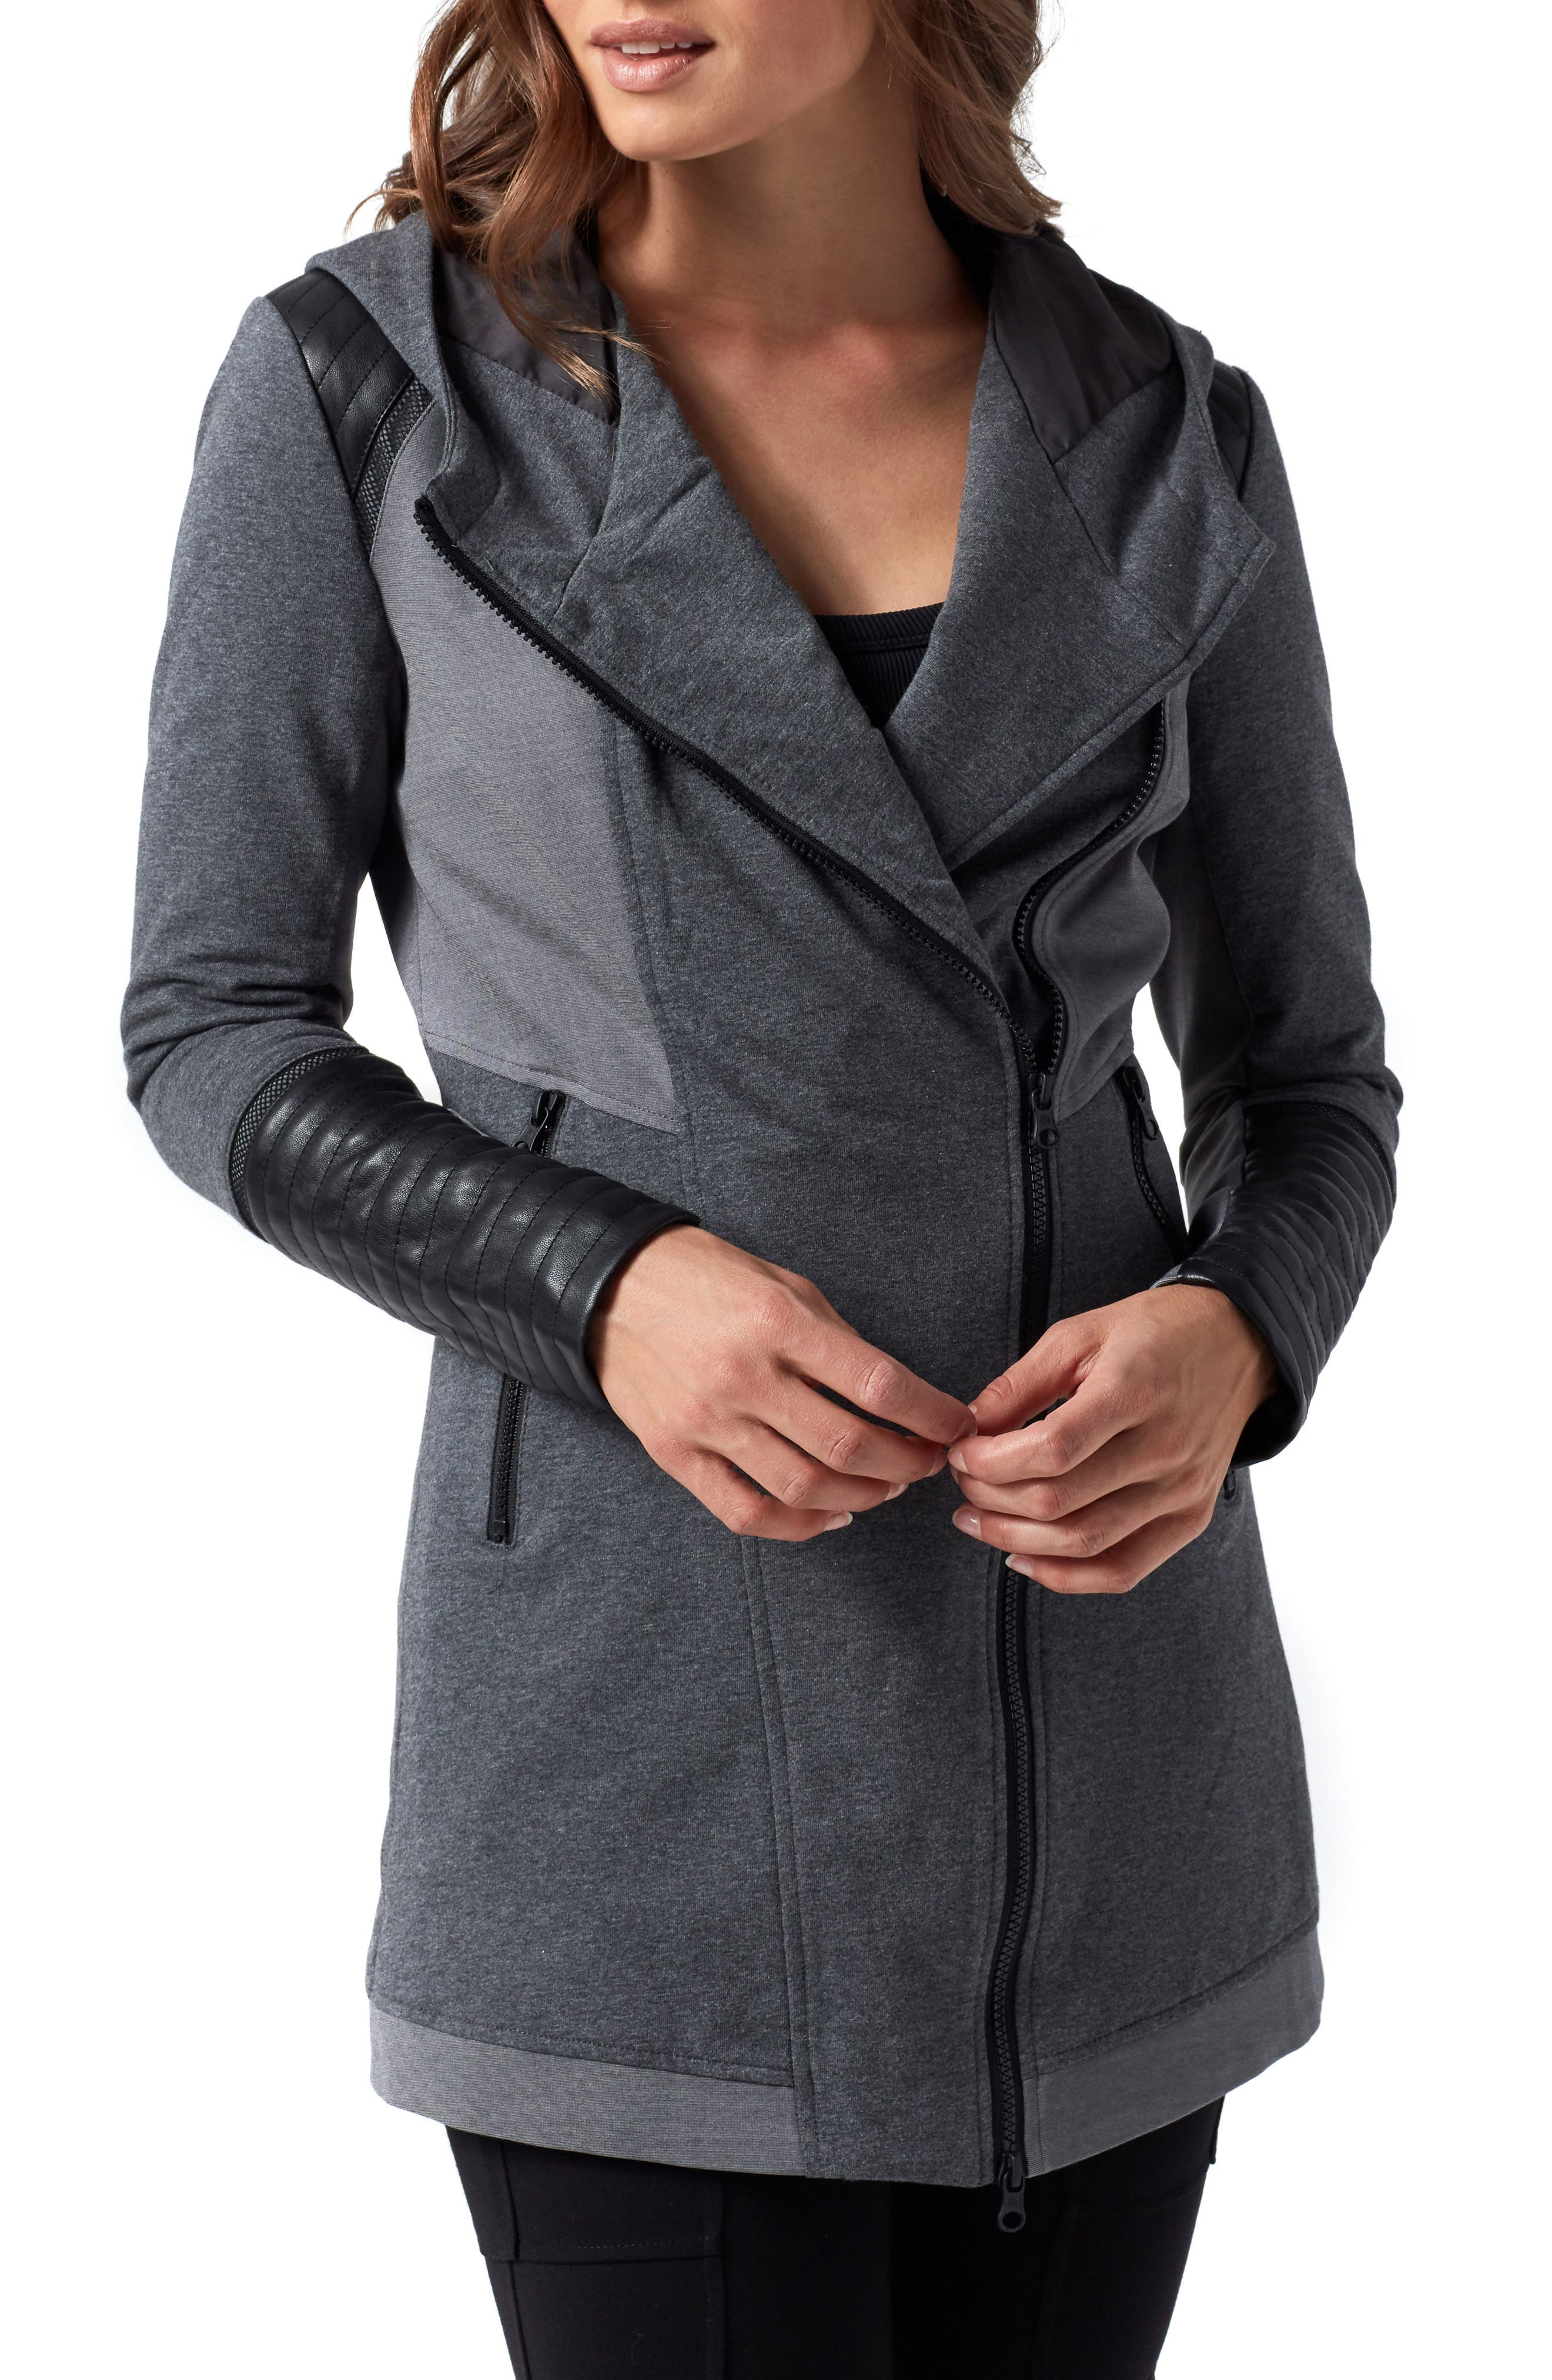 BLANC NOIR Traveller Mesh Inset Jacket, Main, color, CHARCOAL